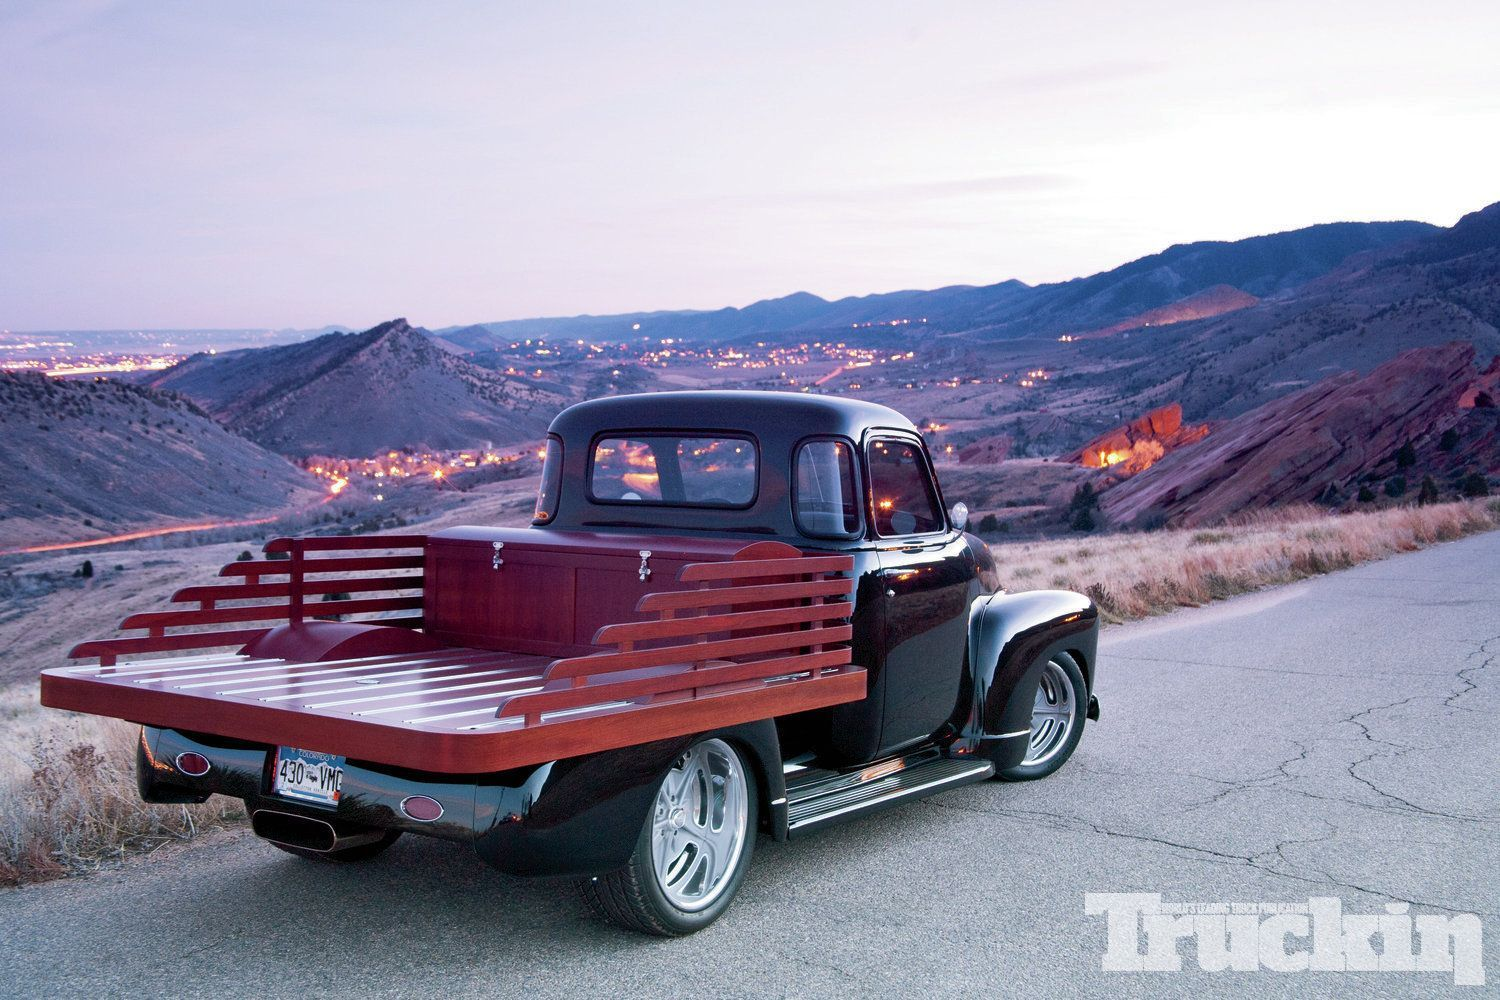 Pickup 48 chevy pickup parts : Image result for 1948 chevy flatbed truck | GM Trucks 1947 - '55 ...